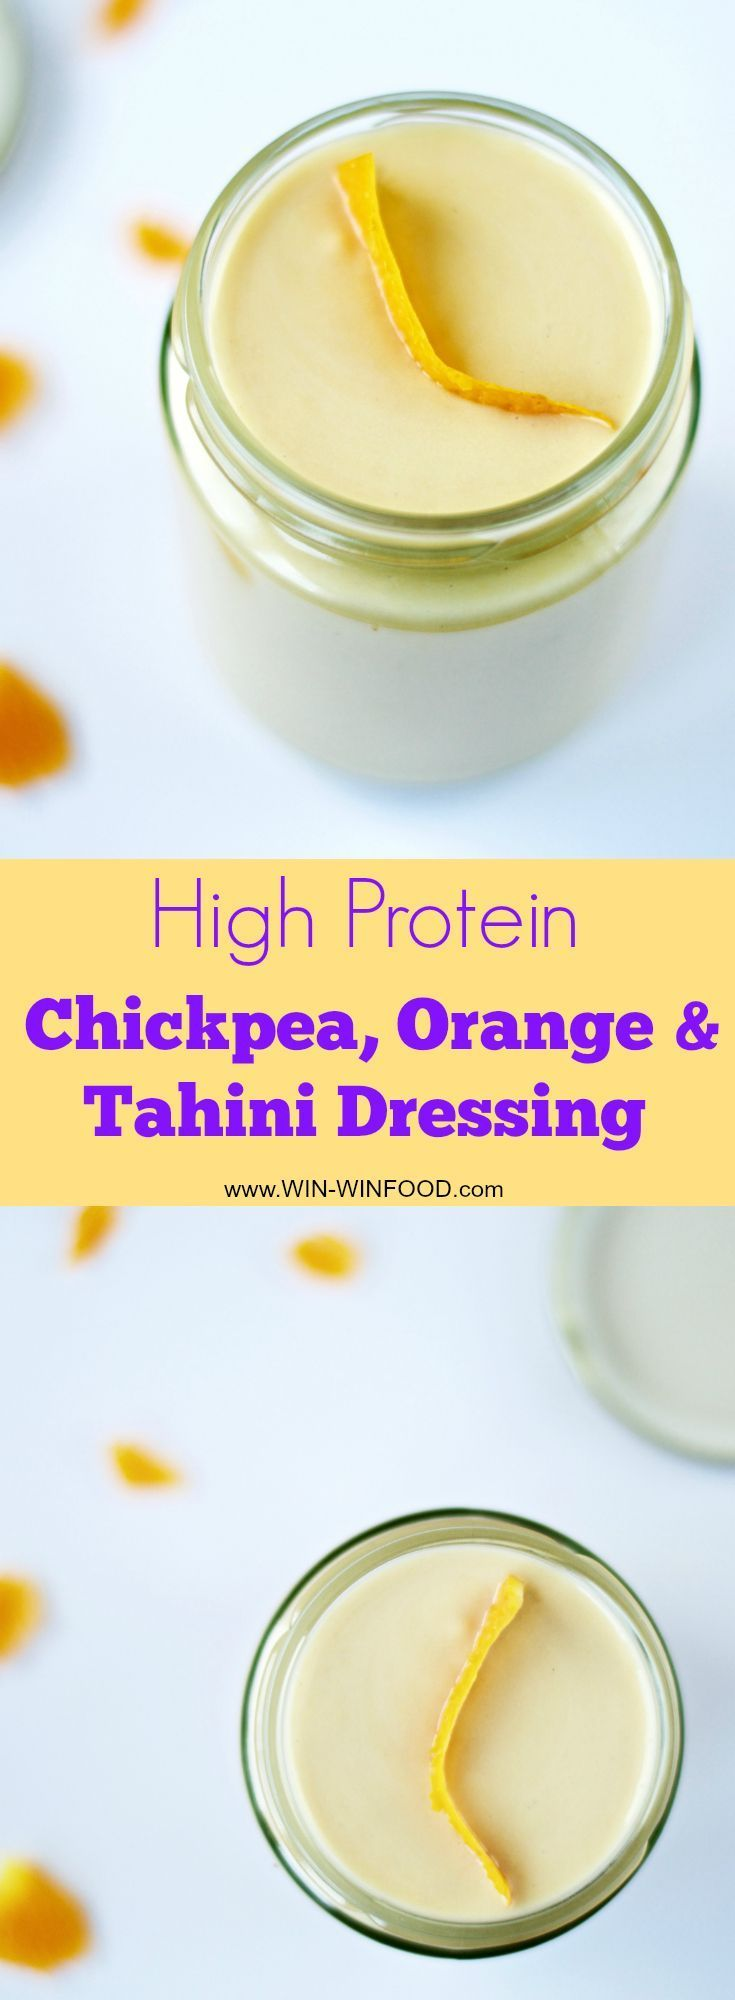 High Protein Chickpea, Orange & Tahini Dressing | WIN-WINFOOD.com Protein packed, oil-free and #lowfat but still super thick and velvety creamy salad #dressing! #vegan #plantbased #glutenfree #oilfree #soyfree